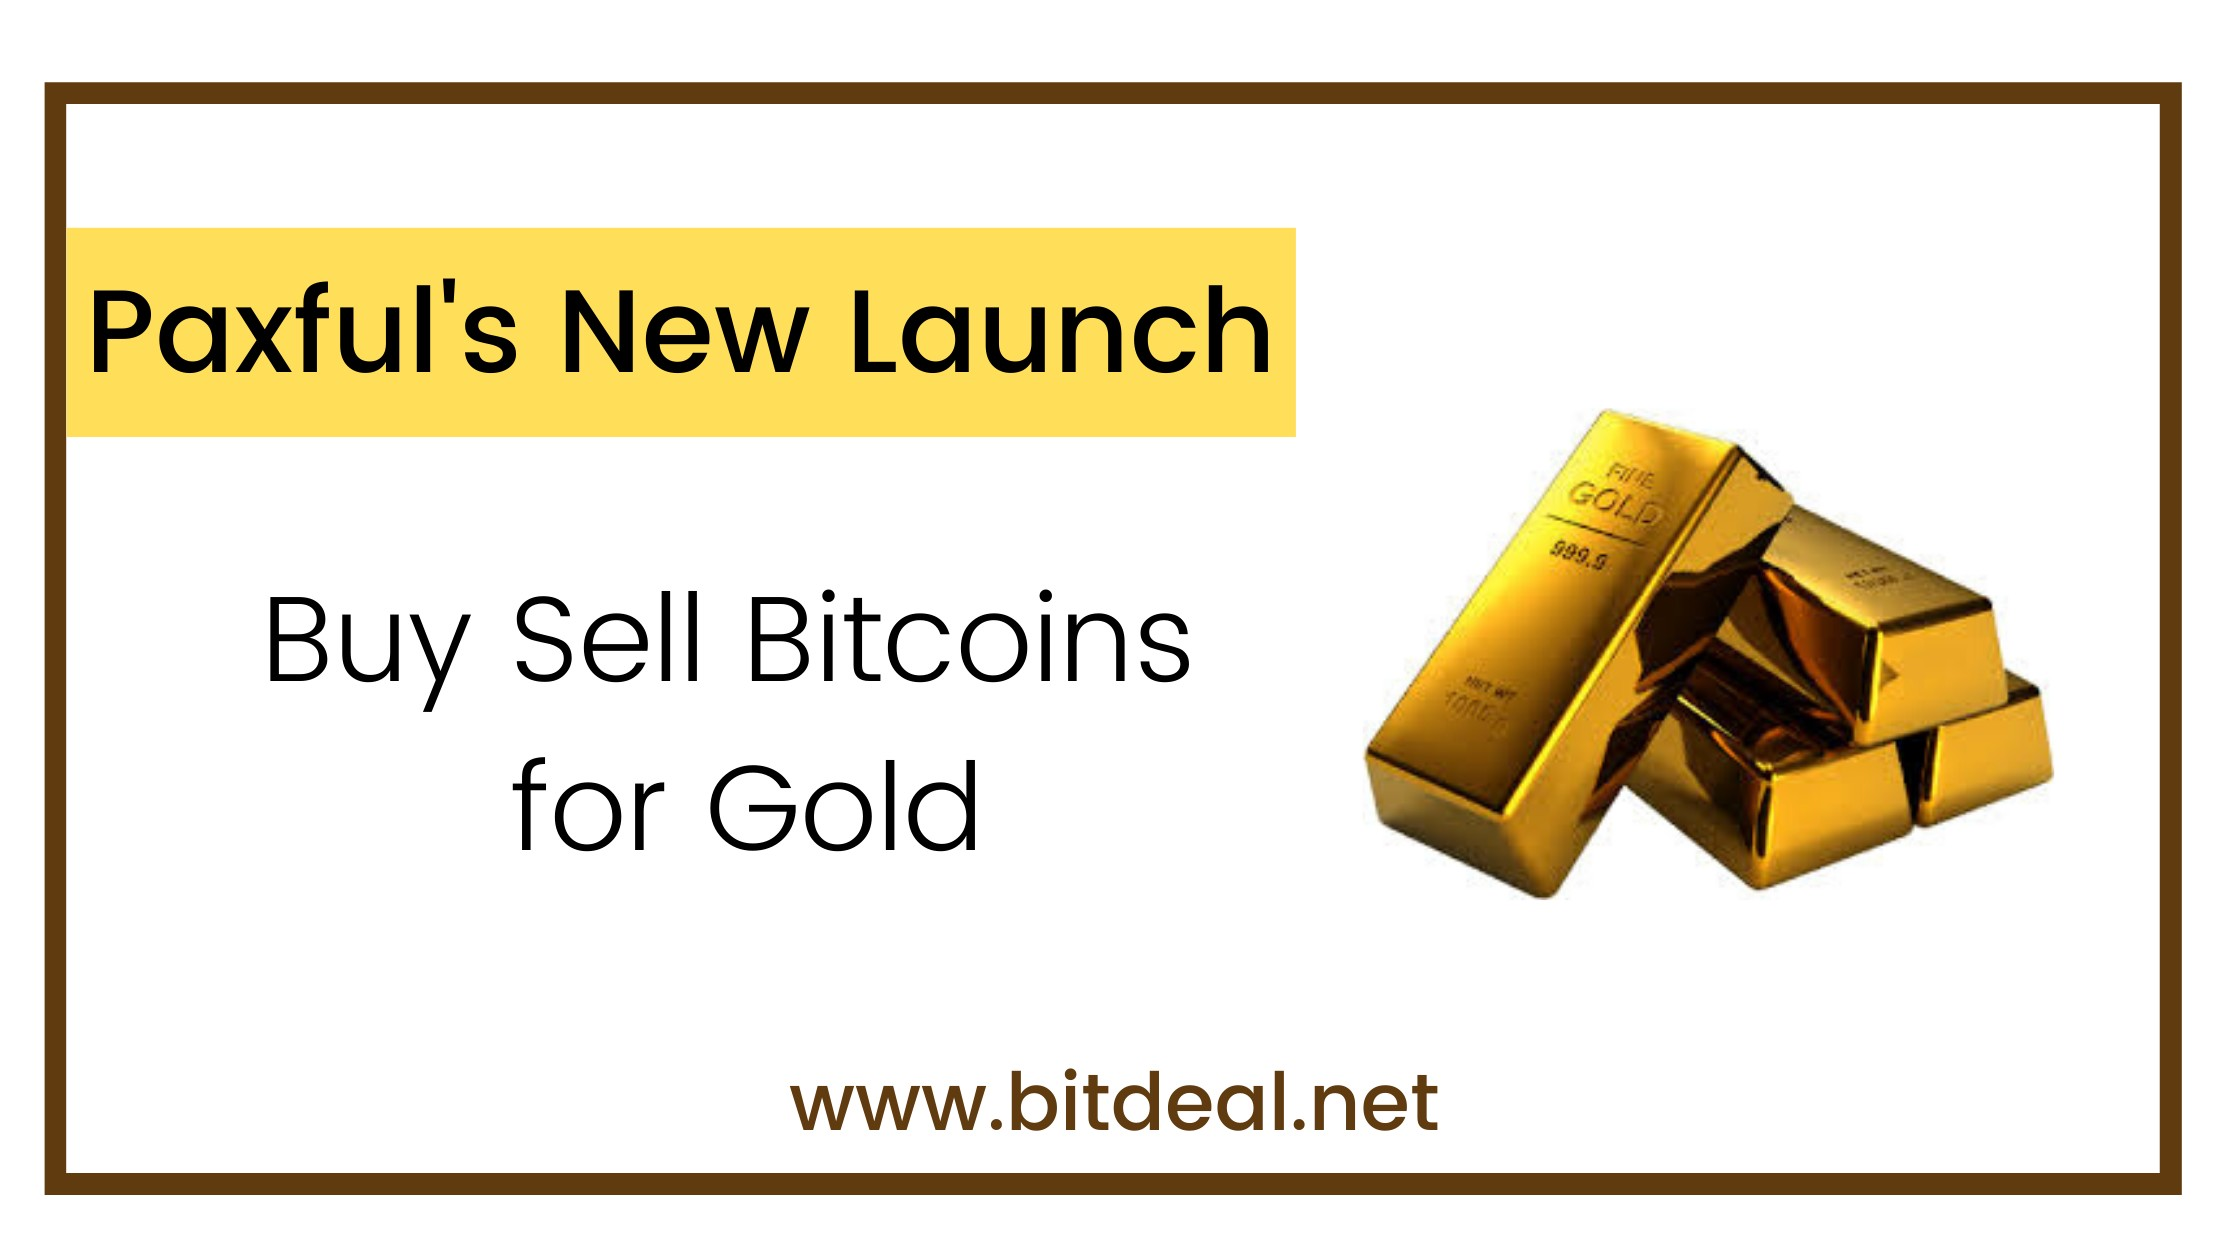 Buy Sell Bitcoin for Gold - Paxful's New Launch